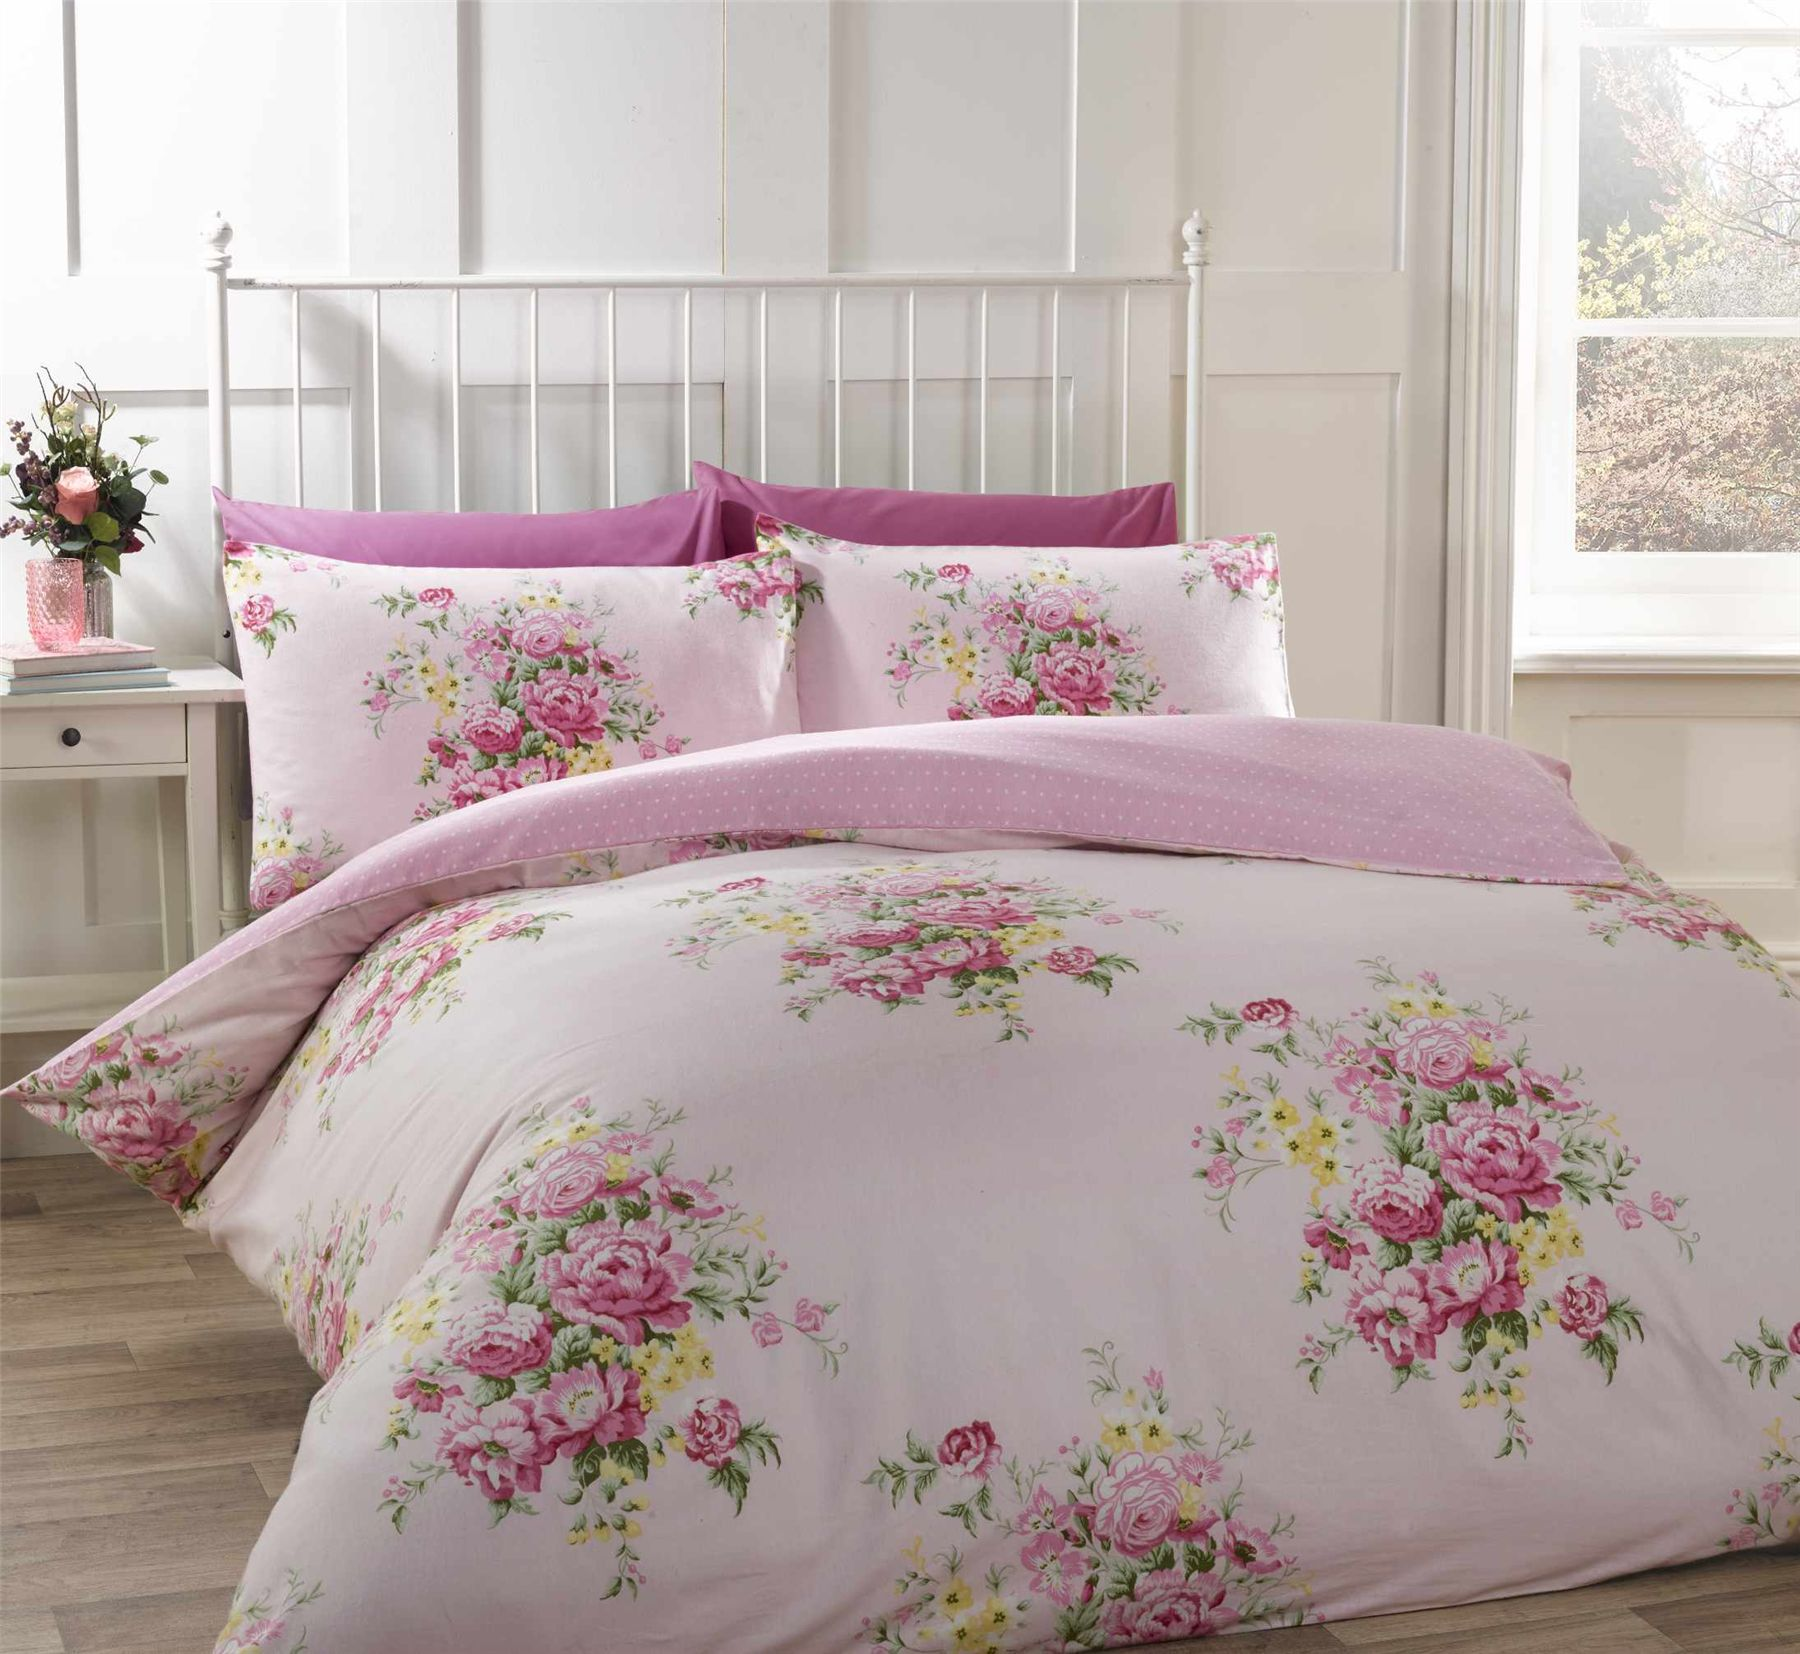 corry corrine limited duvet cover flower expand pink covers harry corinne set prd